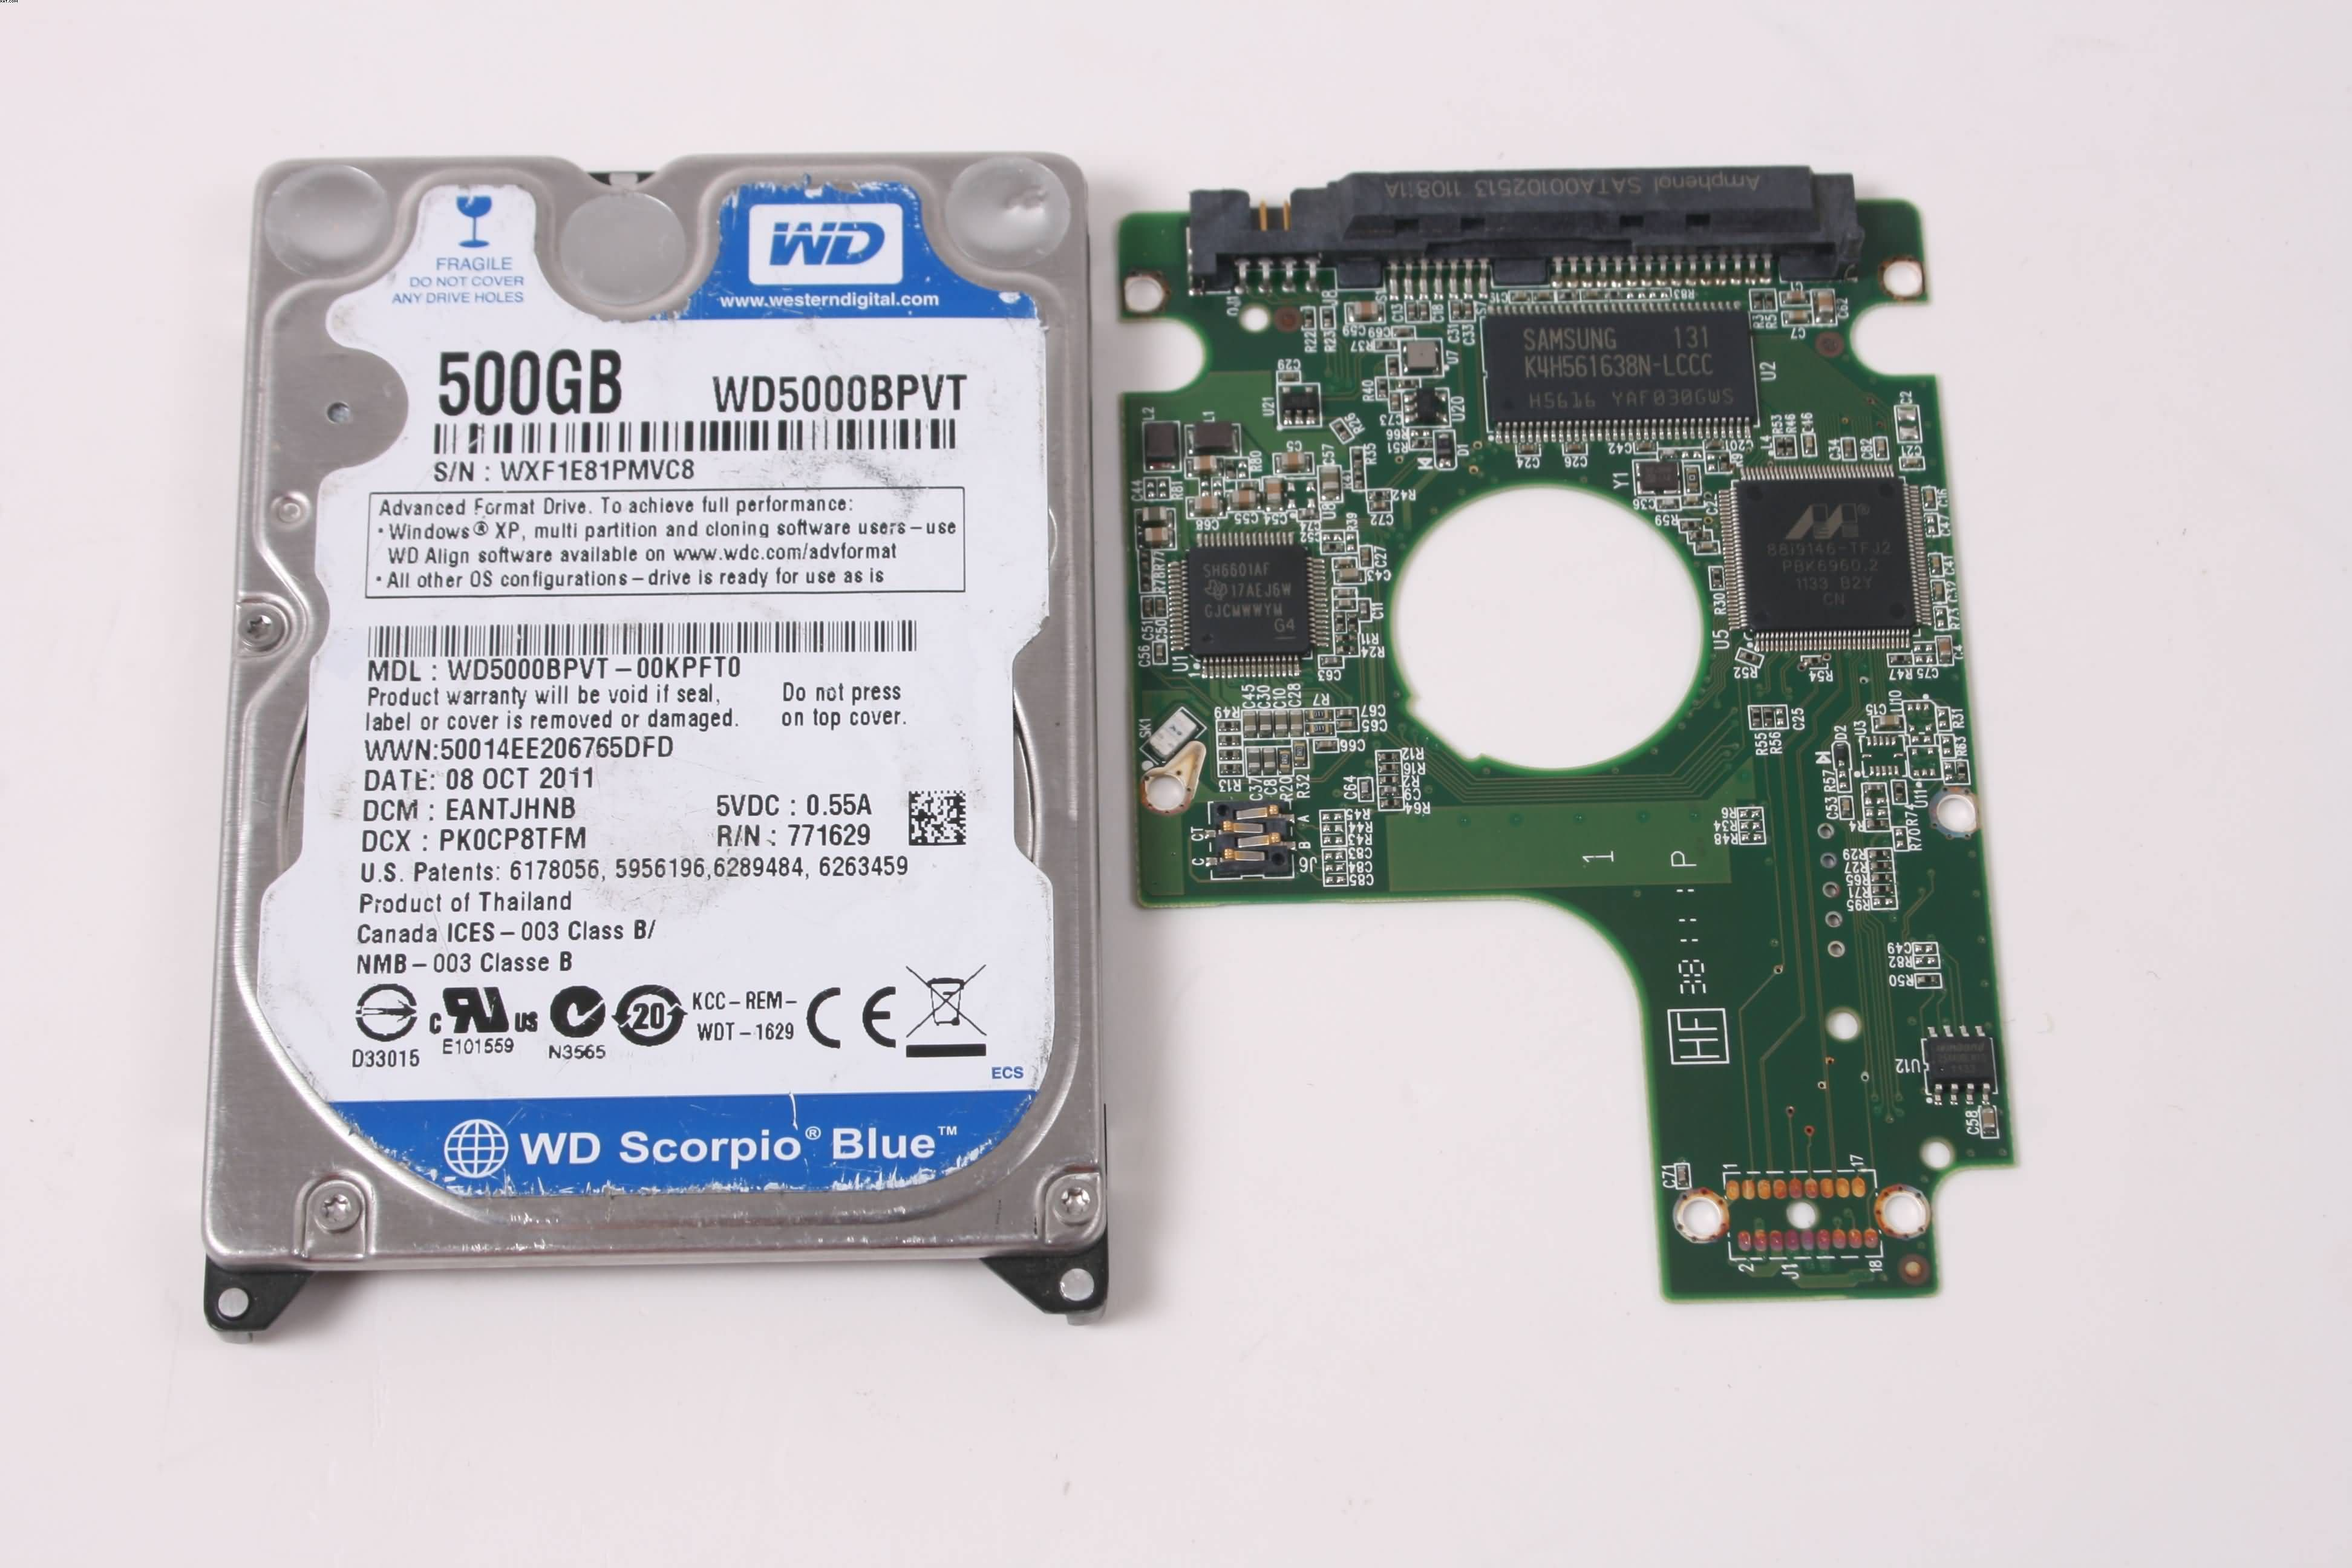 WD WD5000BPVT-00KPFT0 500GB 2,5 SATA HARD DRIVE / PCB (CIRCUIT BOARD) ONLY FOR DATA